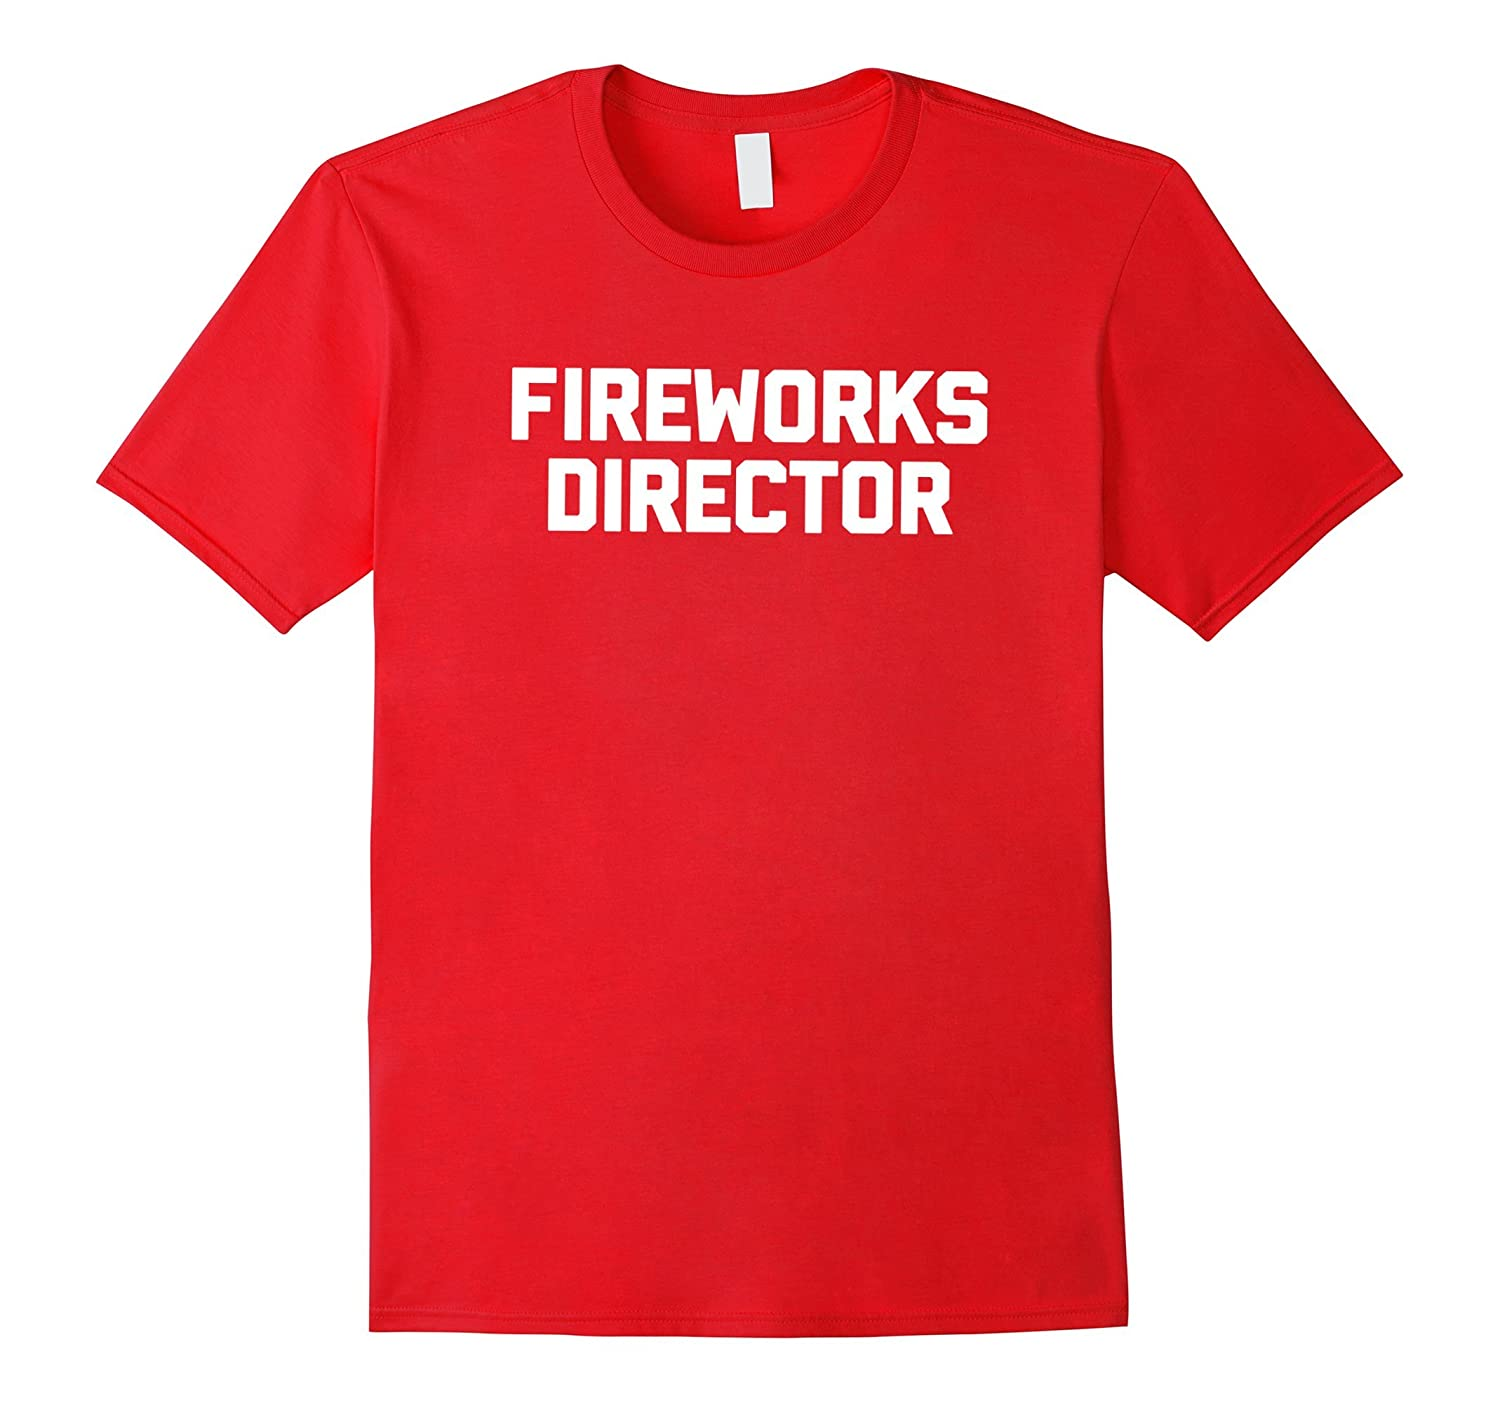 4th Of July Shirt: Fireworks Director T-Shirt funny saying-TH